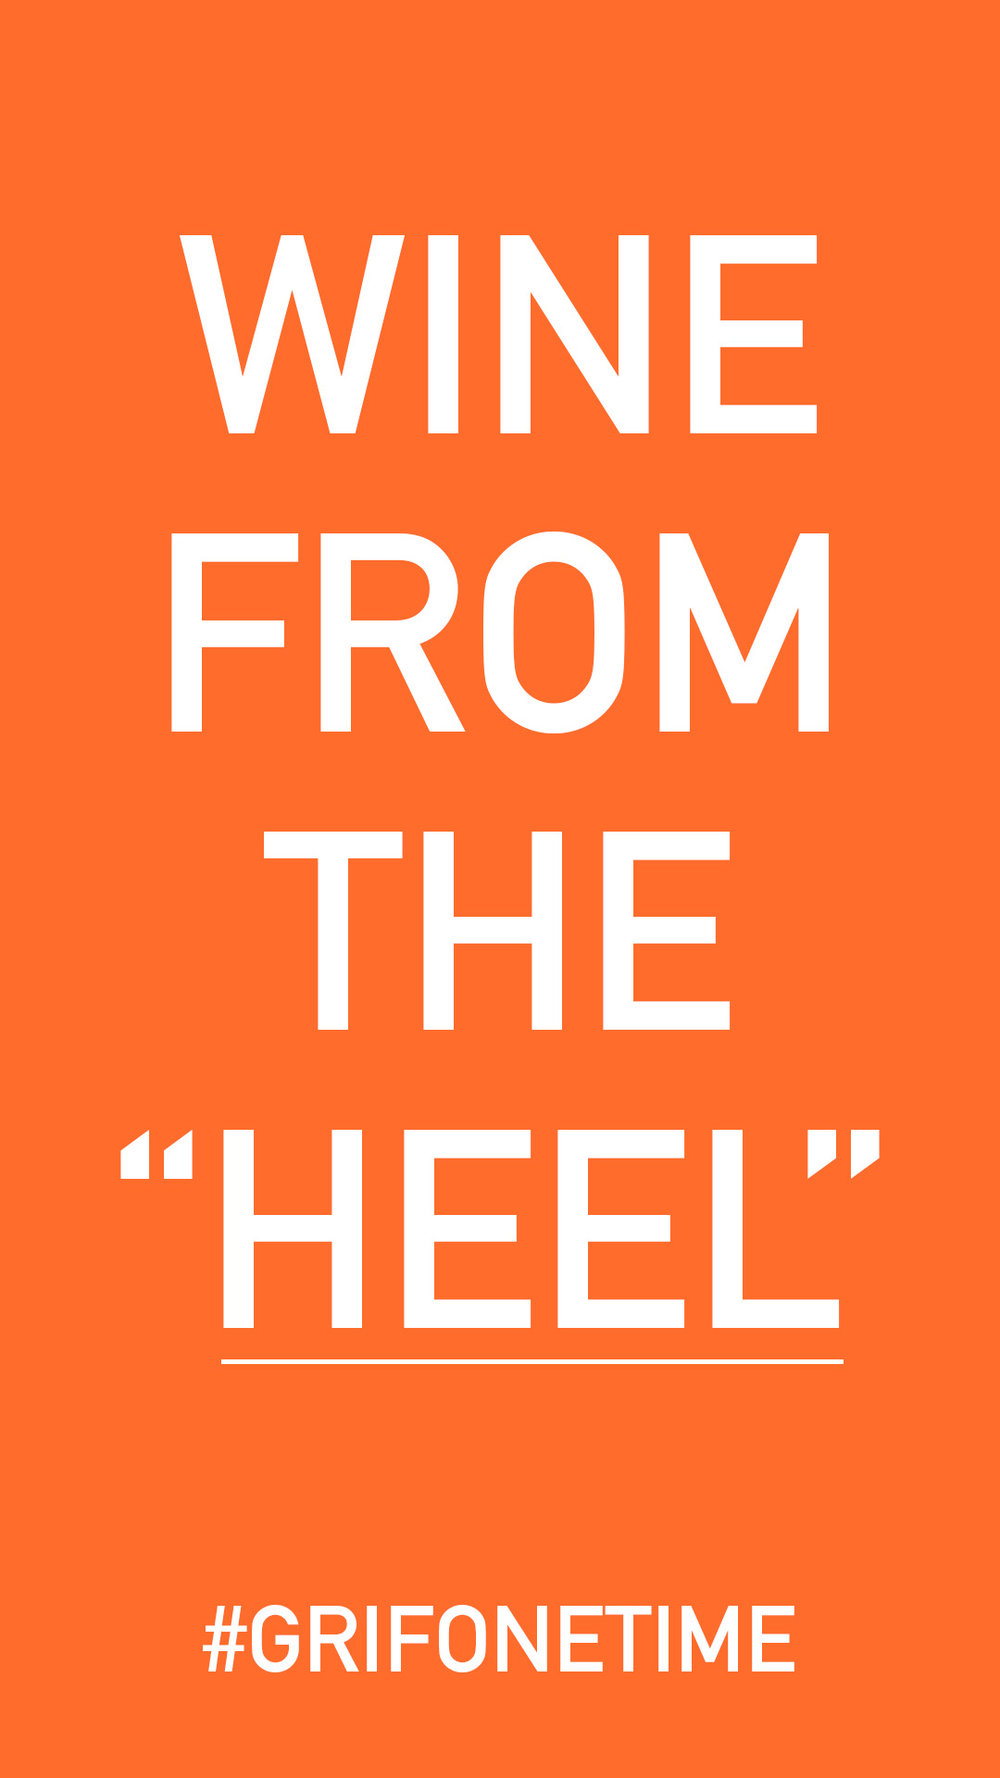 wine from the heel #grifonewine